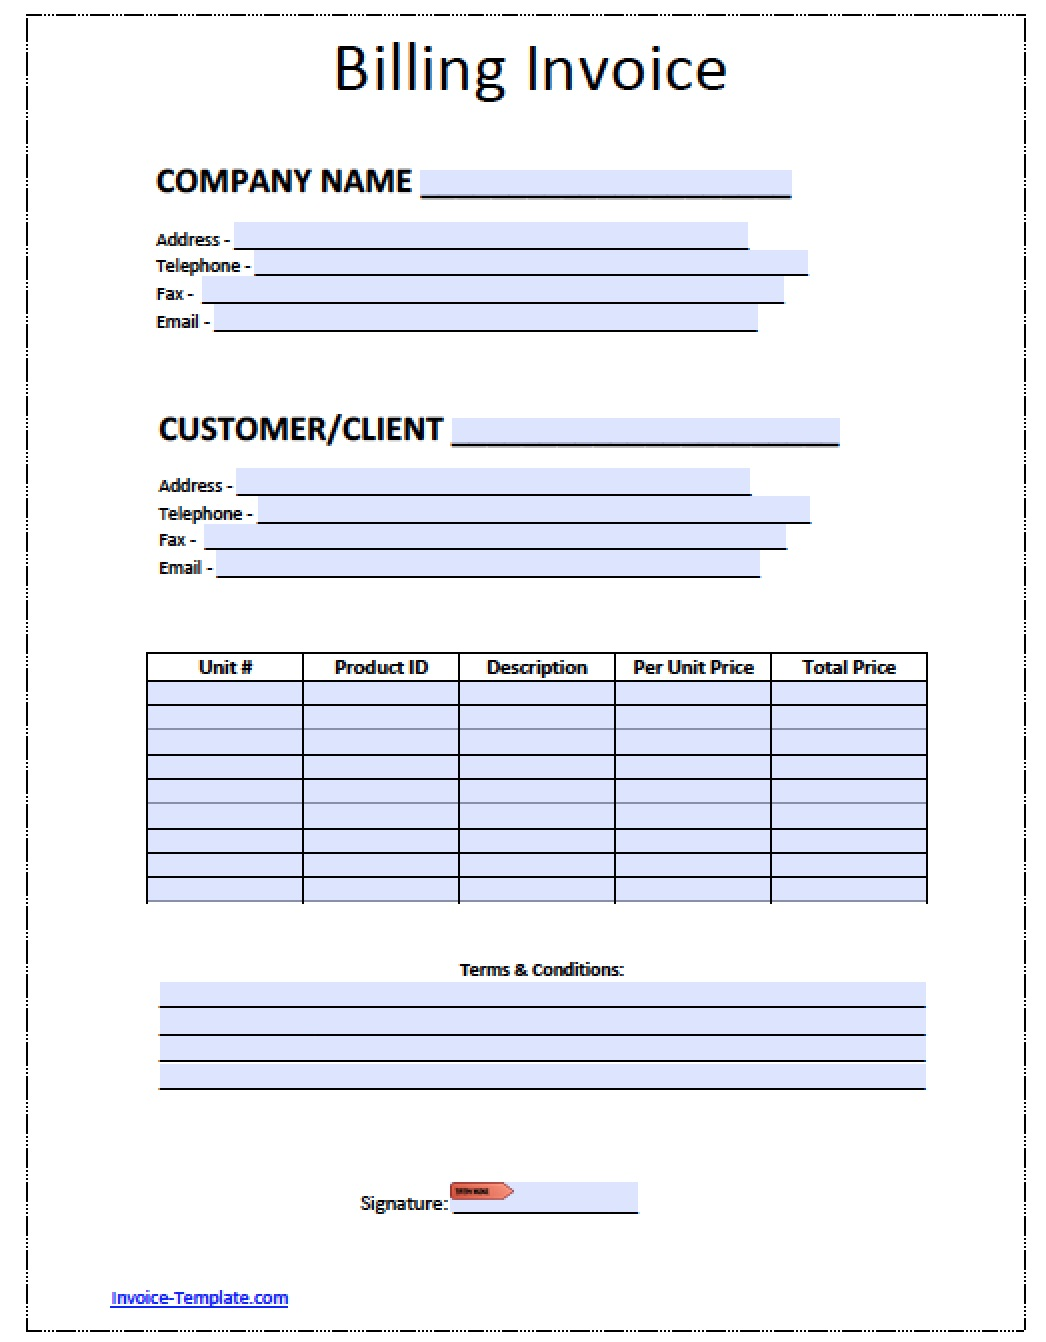 Shopdesignsus  Seductive Billing Invoice Invoices Faq U Cloudflare Support Billing  With Magnificent Free Billing Invoice Template  Excel  Pdf  Word Doc  Billing With Adorable Ups Invoice Payment Also Invoice Processing Platform In Addition Free Auto Repair Invoice Form And Invoice Template Word  As Well As Logo Design Invoice Additionally What Is A Proforma Invoice In The Uk From Happytomco With Shopdesignsus  Magnificent Billing Invoice Invoices Faq U Cloudflare Support Billing  With Adorable Free Billing Invoice Template  Excel  Pdf  Word Doc  Billing And Seductive Ups Invoice Payment Also Invoice Processing Platform In Addition Free Auto Repair Invoice Form From Happytomco